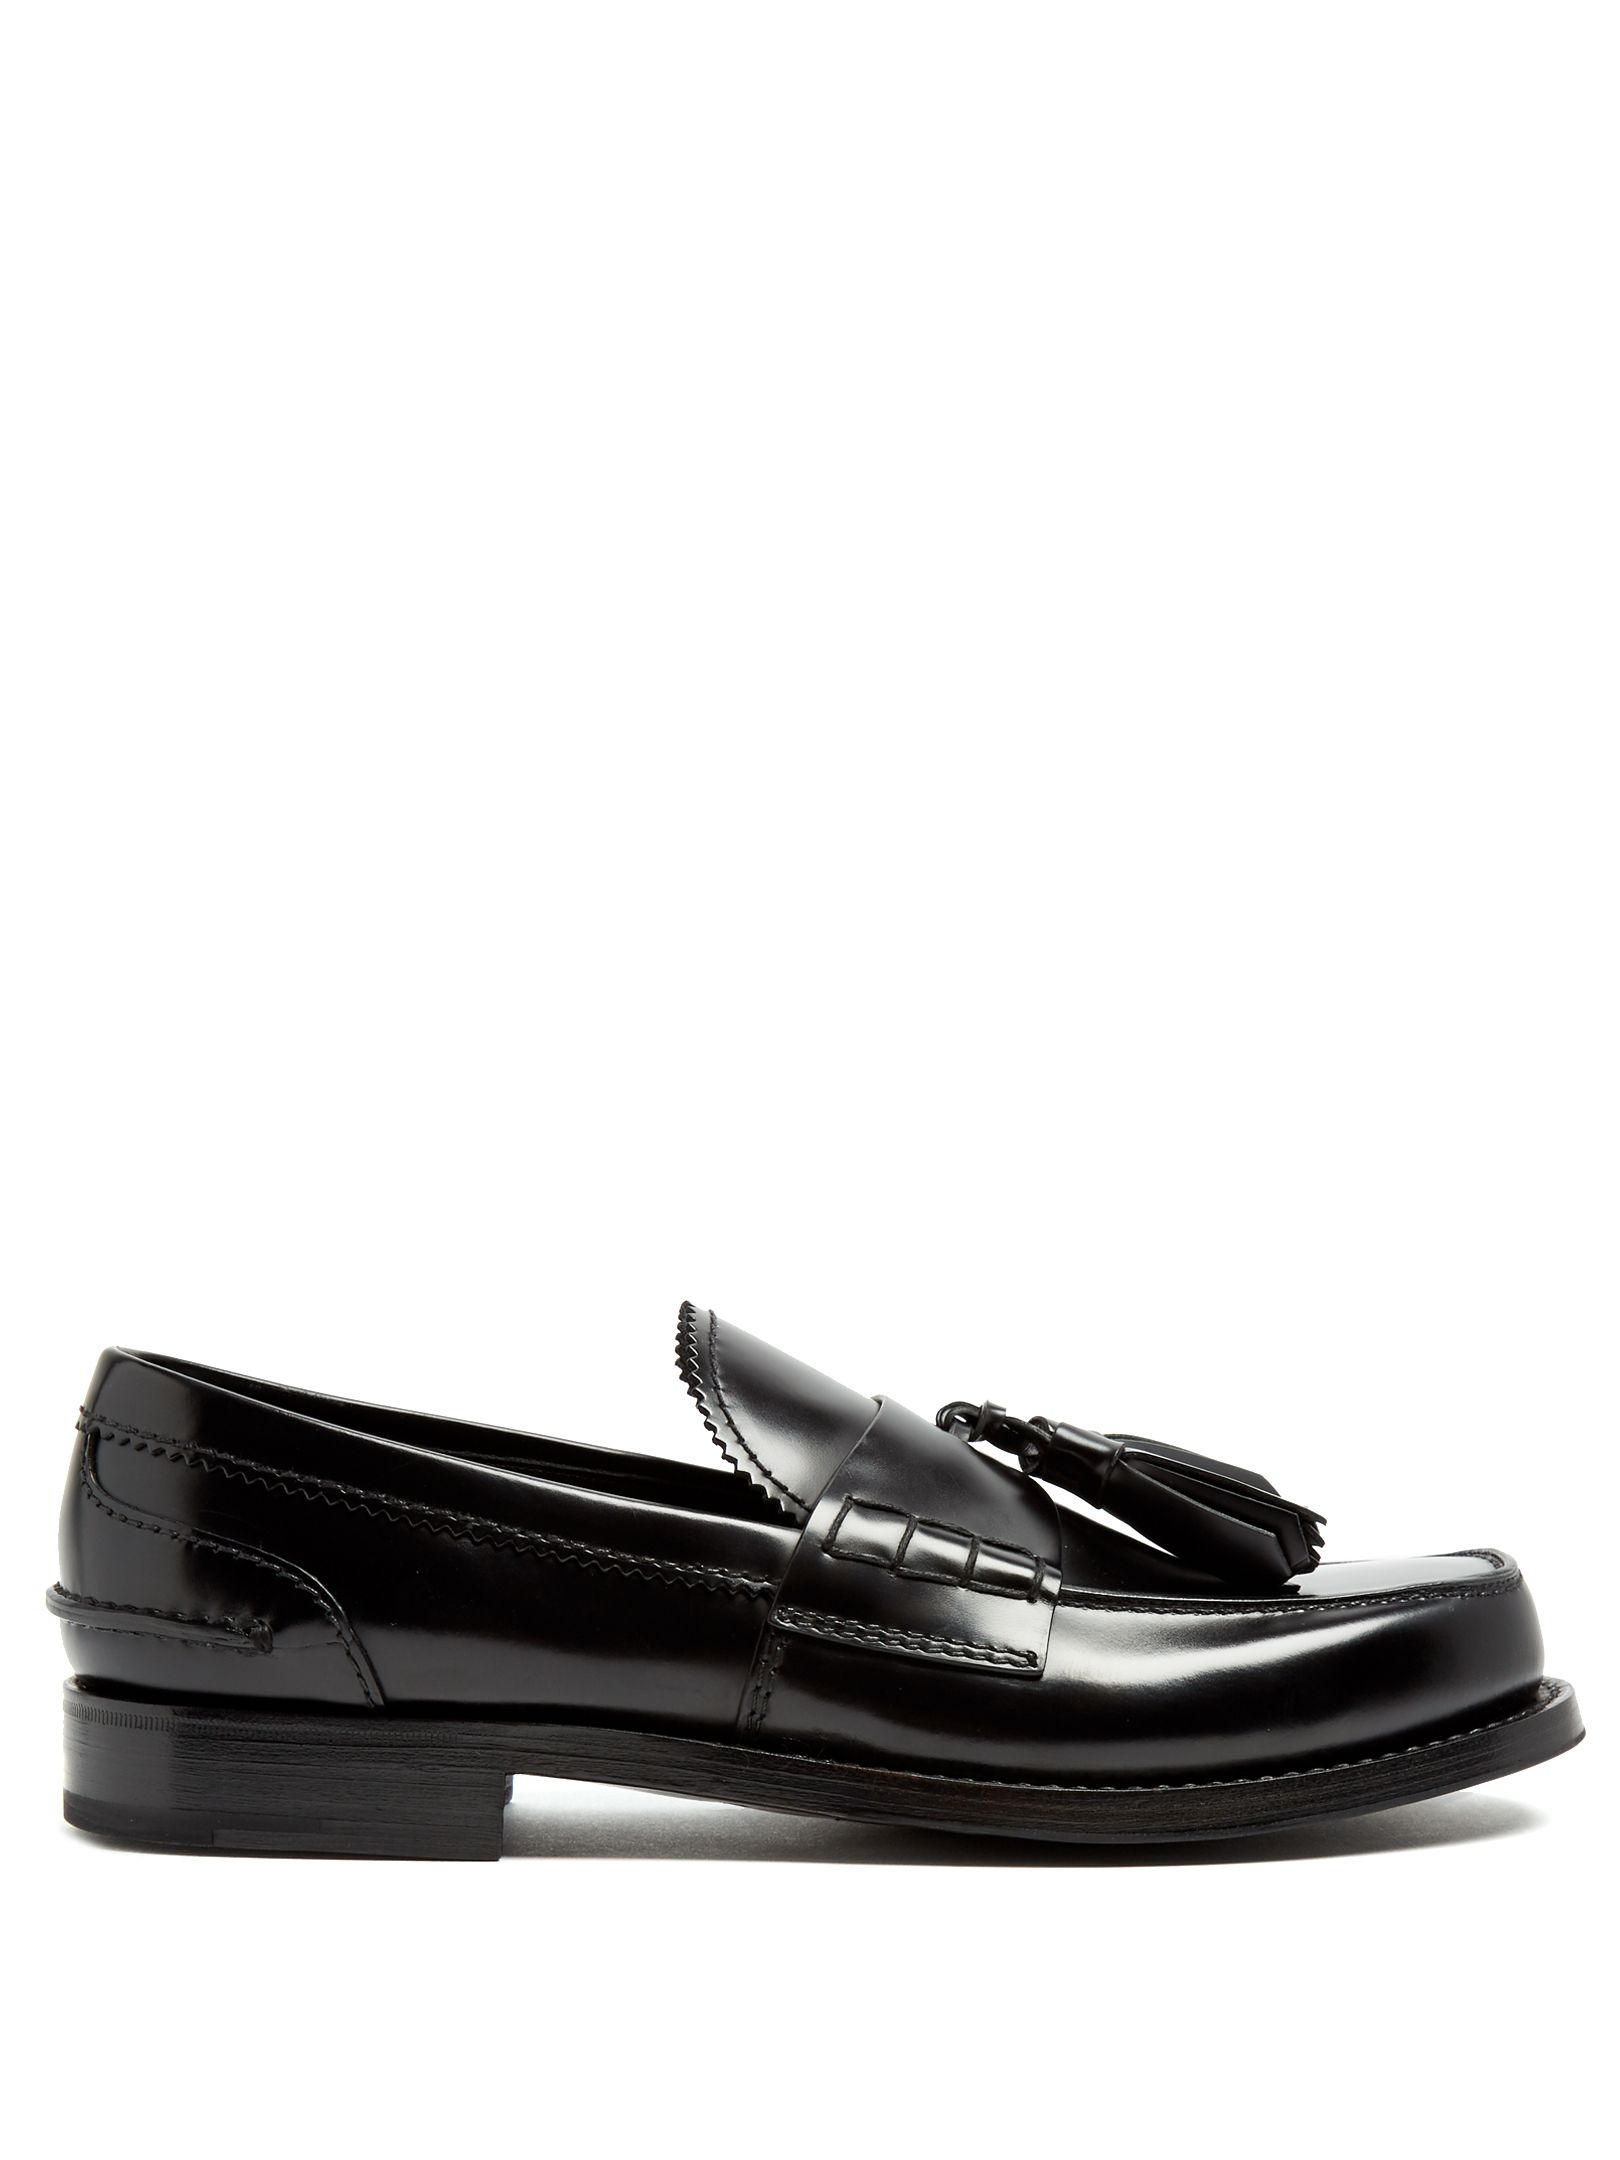 Pradatasselled loafers